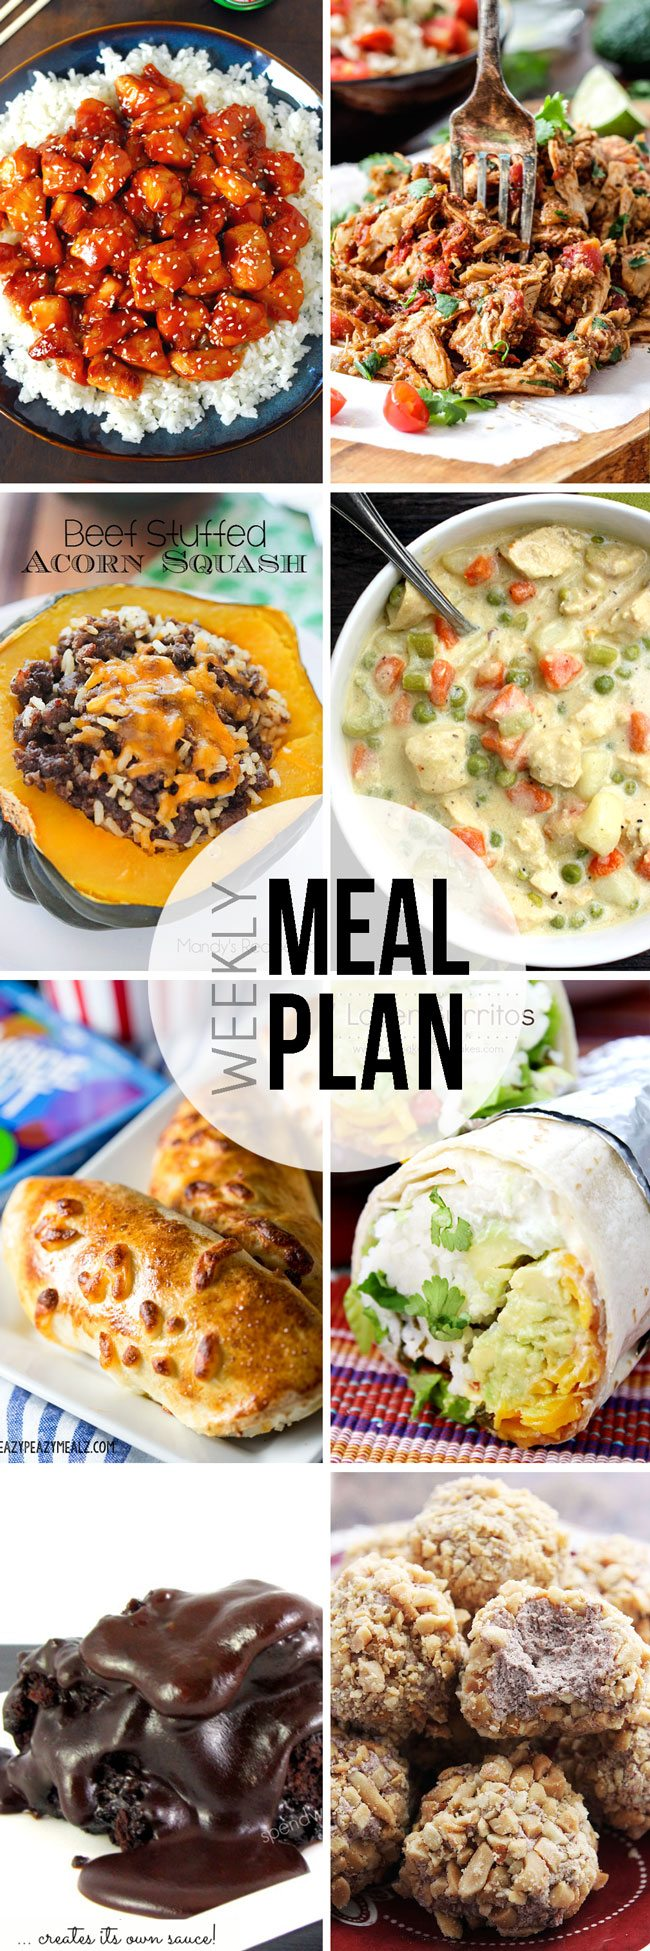 Meal-Plan---Pinterest-23